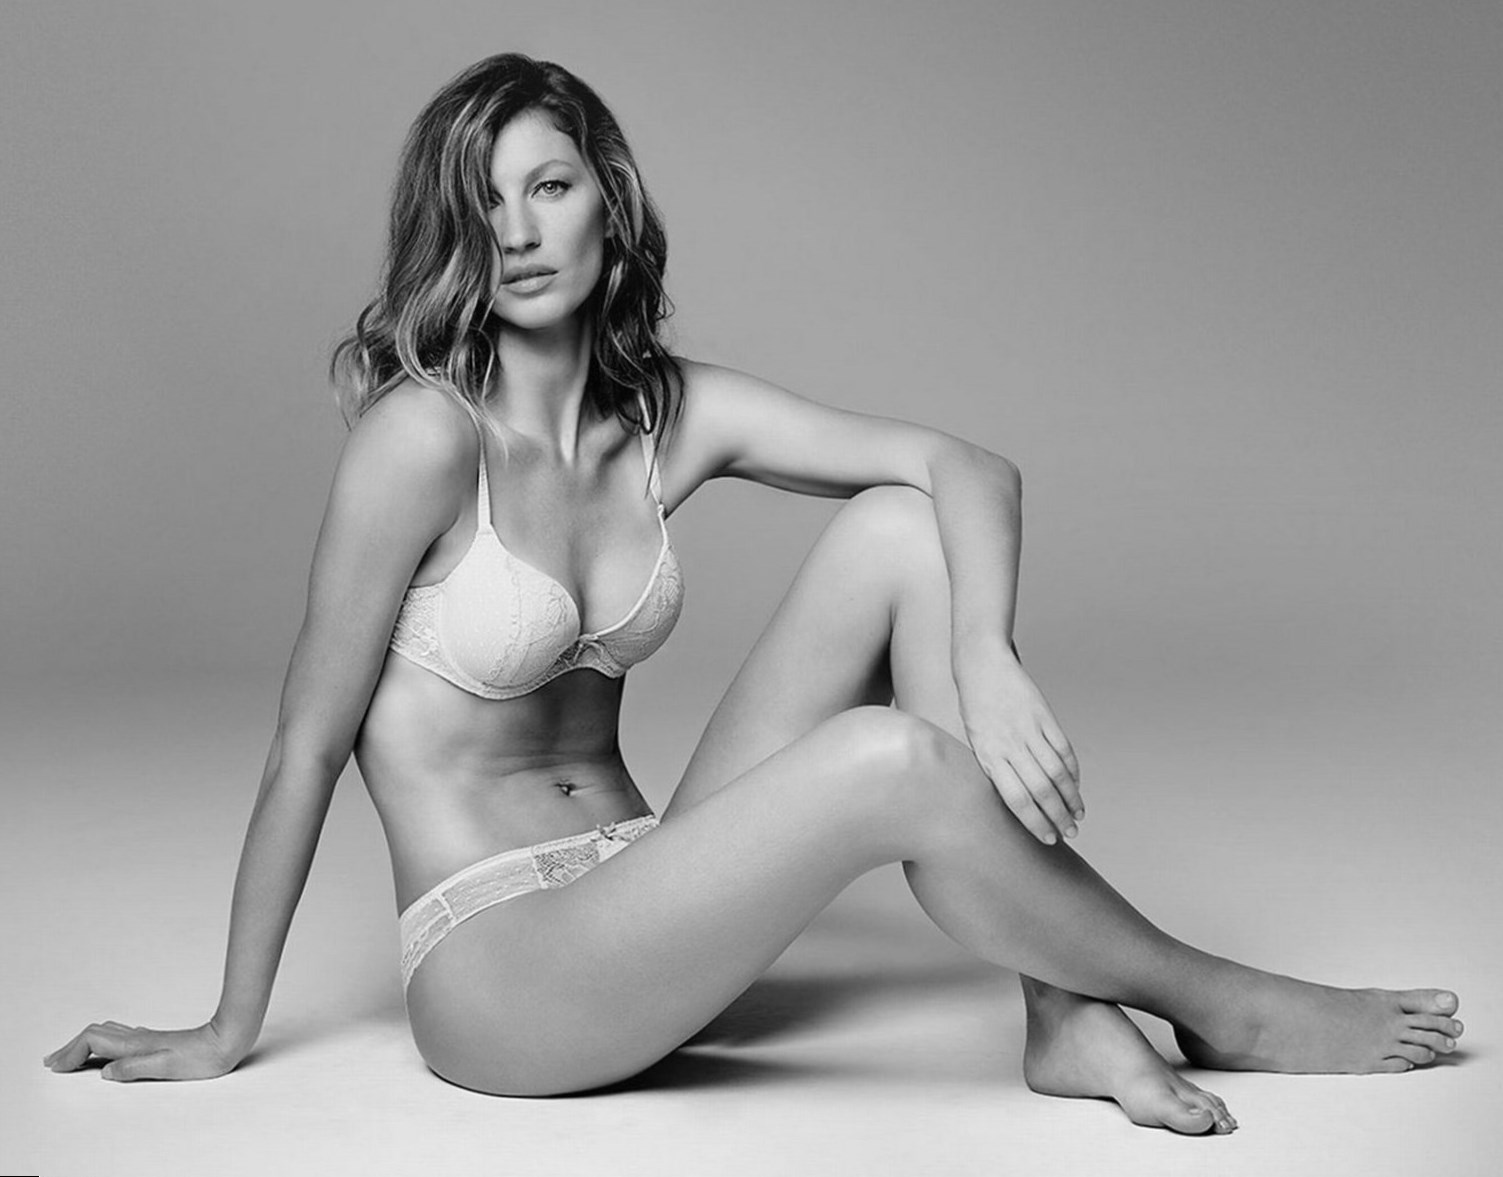 Gisele Bündchen weight, height and age. We know it all!